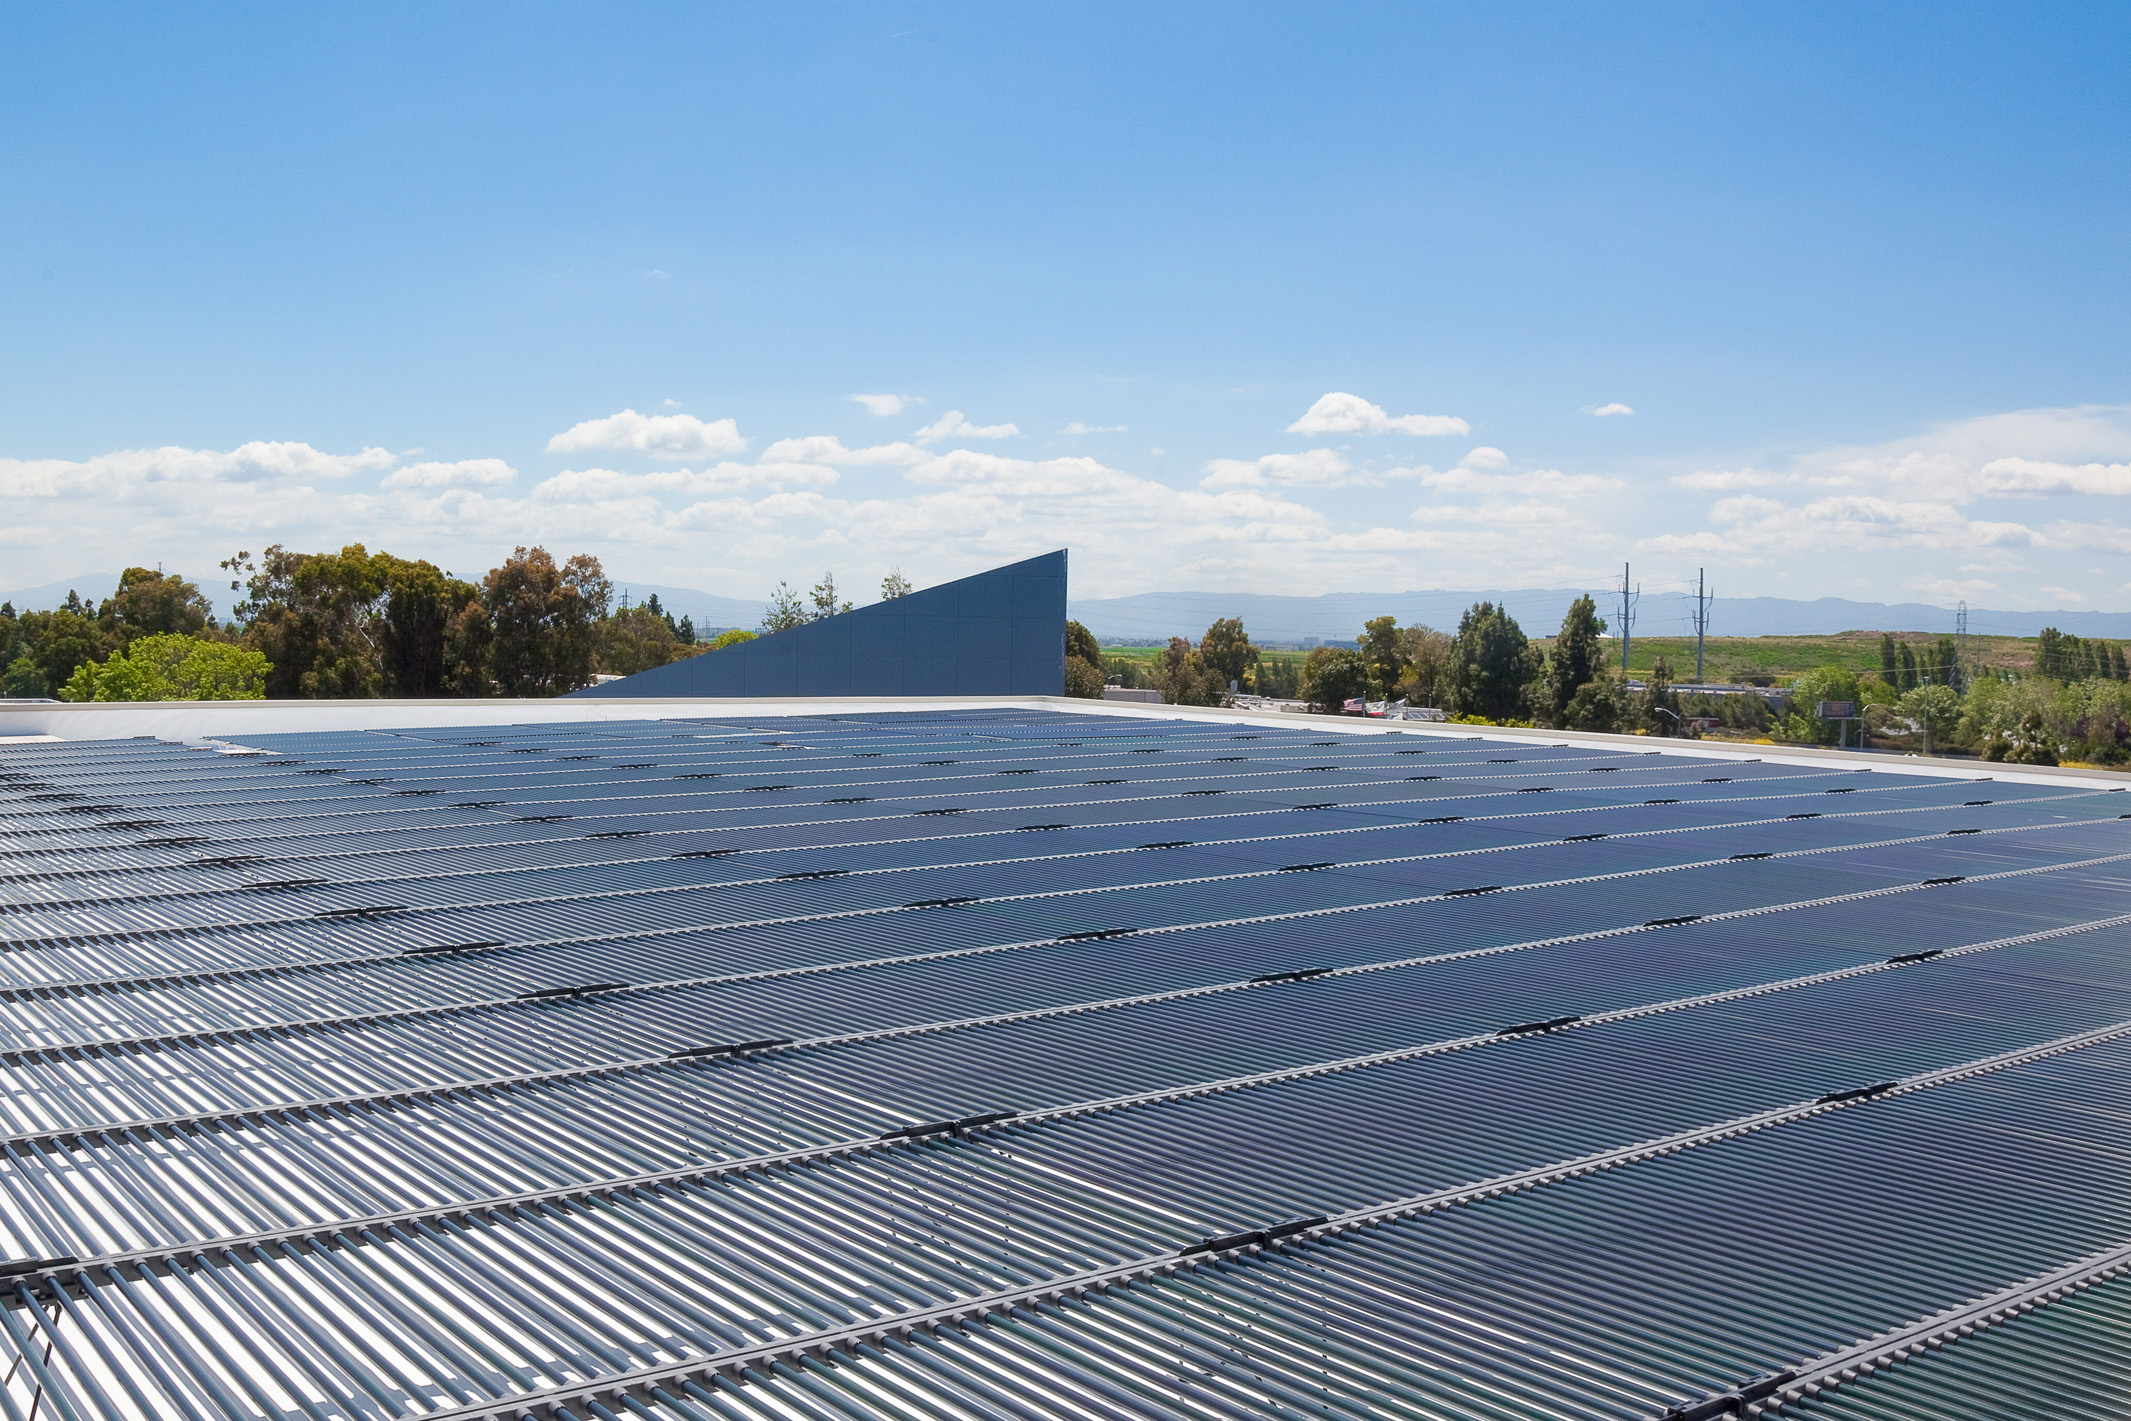 Solyndra Announces the Fastest and Easiest-to-Install Rooftop Solar System